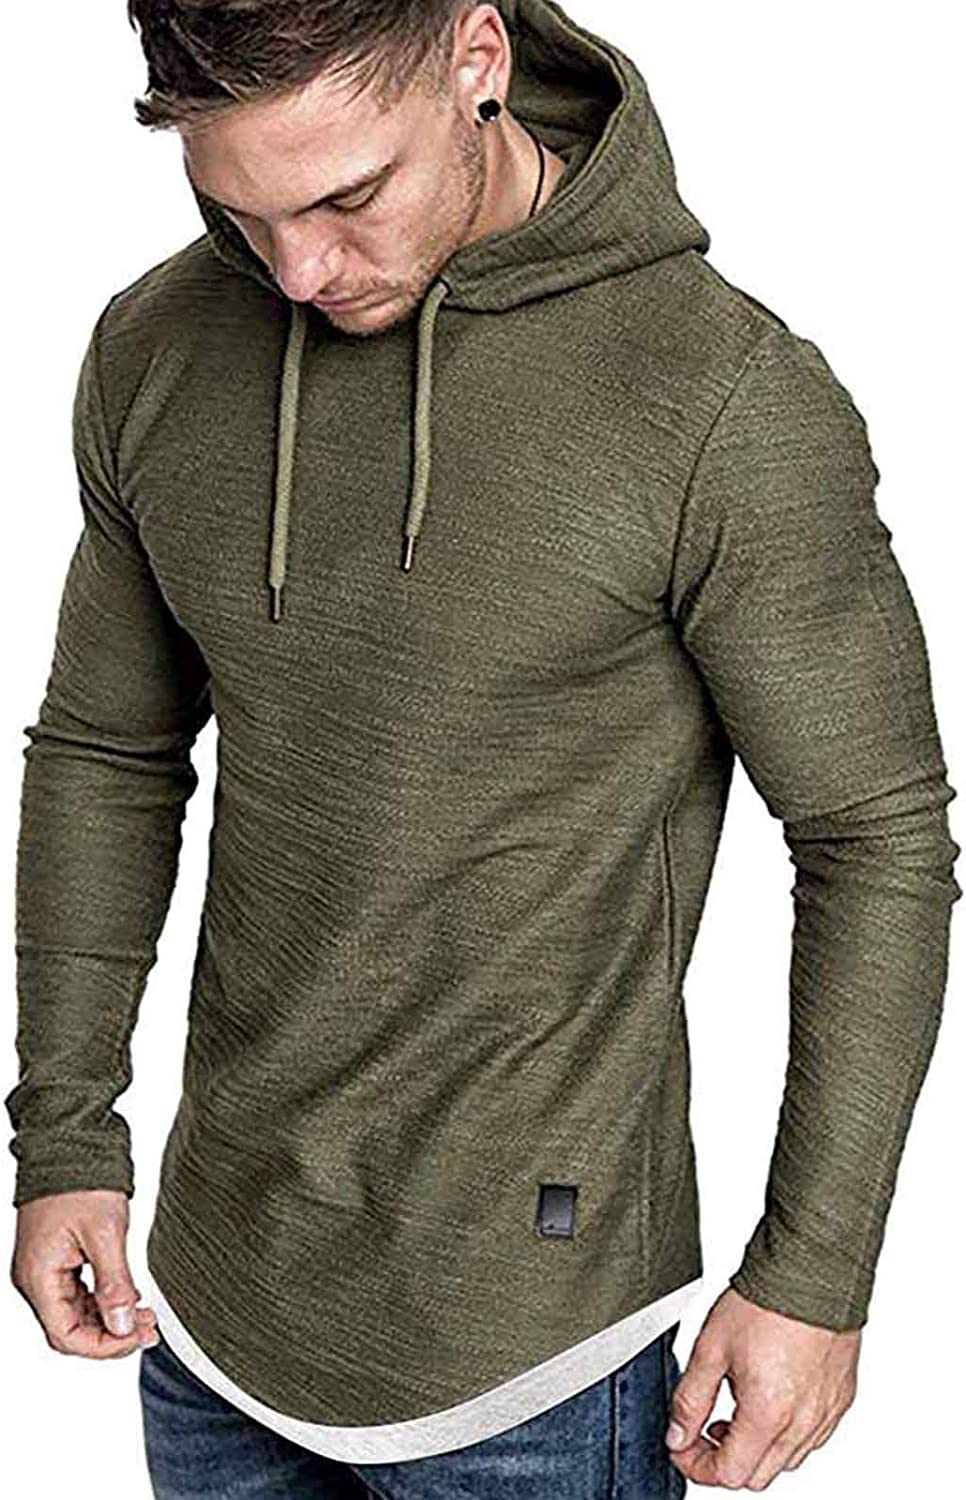 Men's Casual Hooded Sweatshirt - Solid Color Pullover Top Blouse Mens Fashion T-Shirts